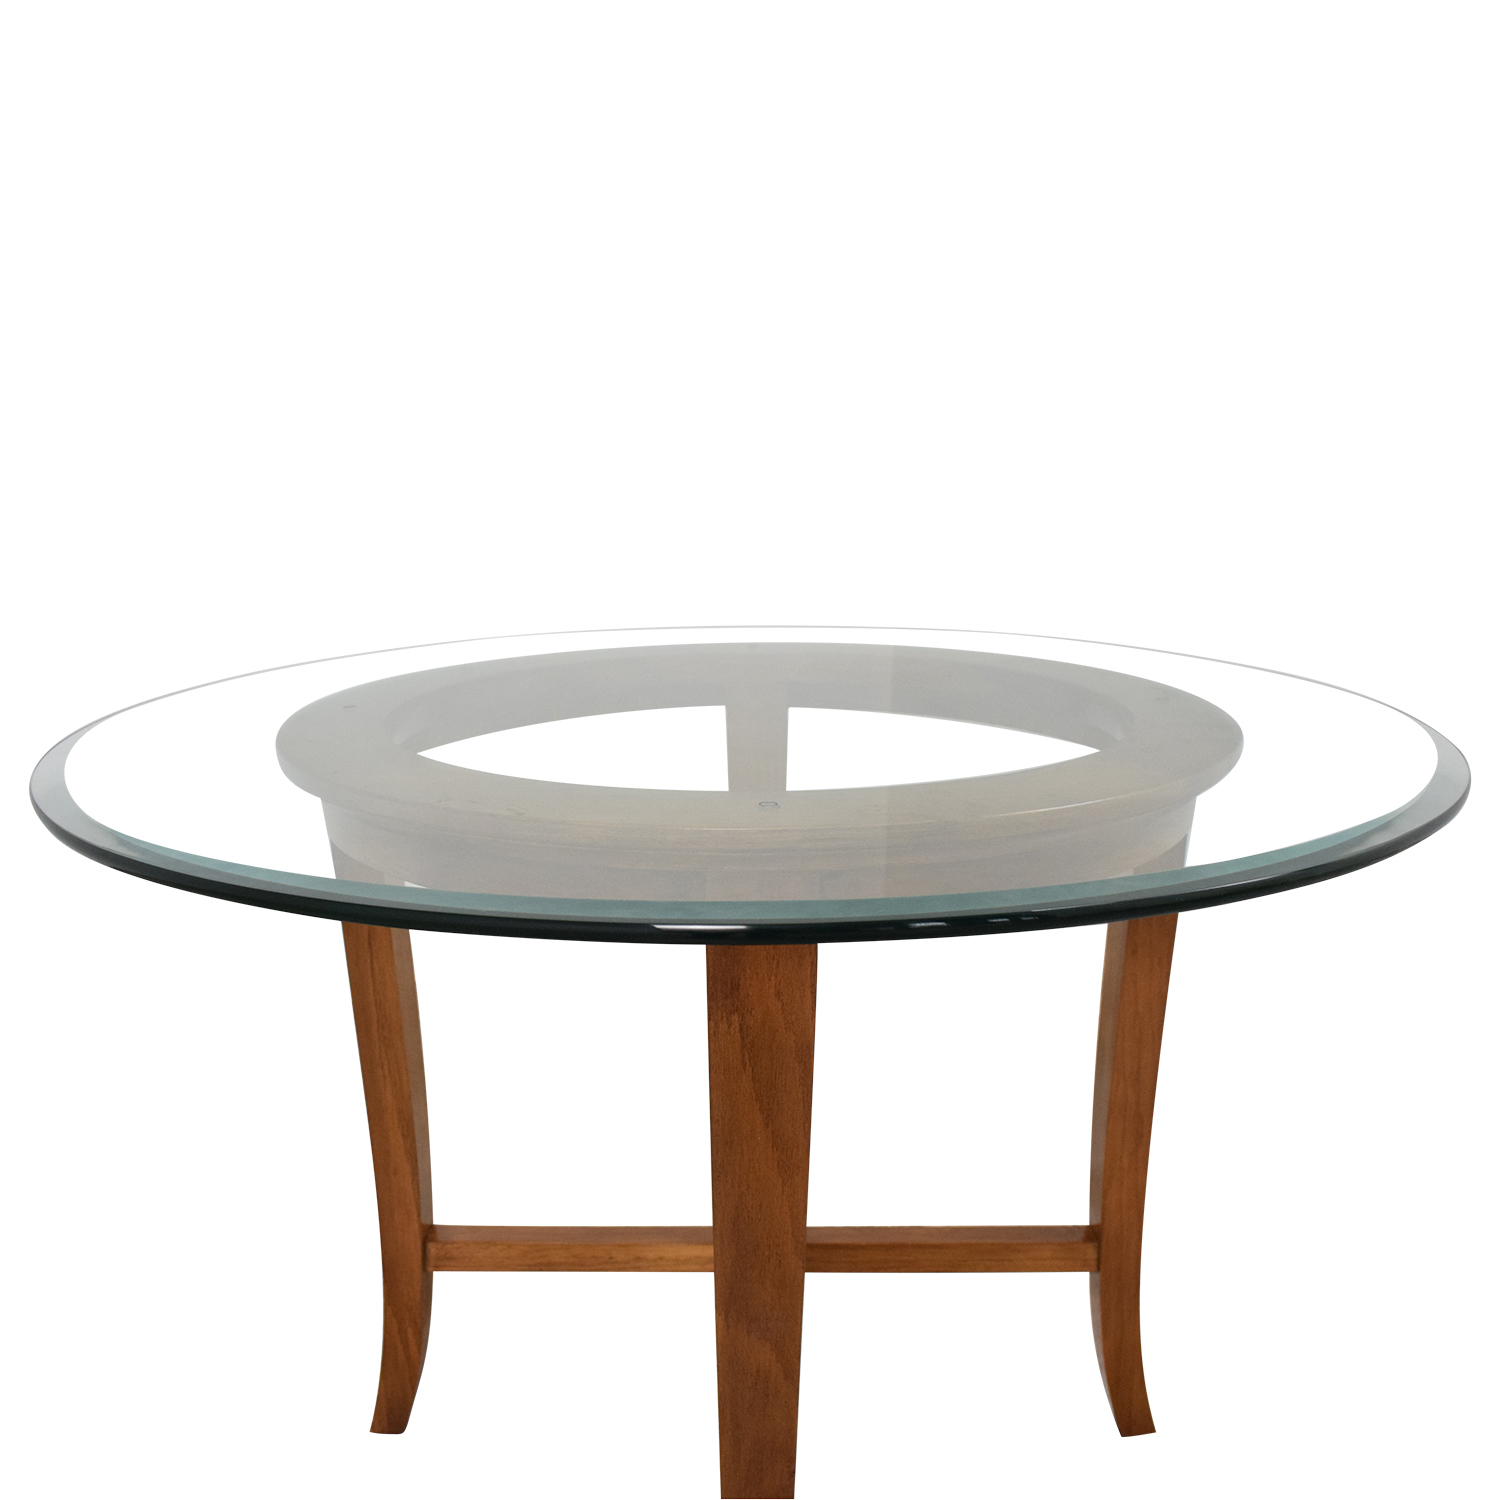 Crate & Barrel Crate & Barrel Halo Dining Table